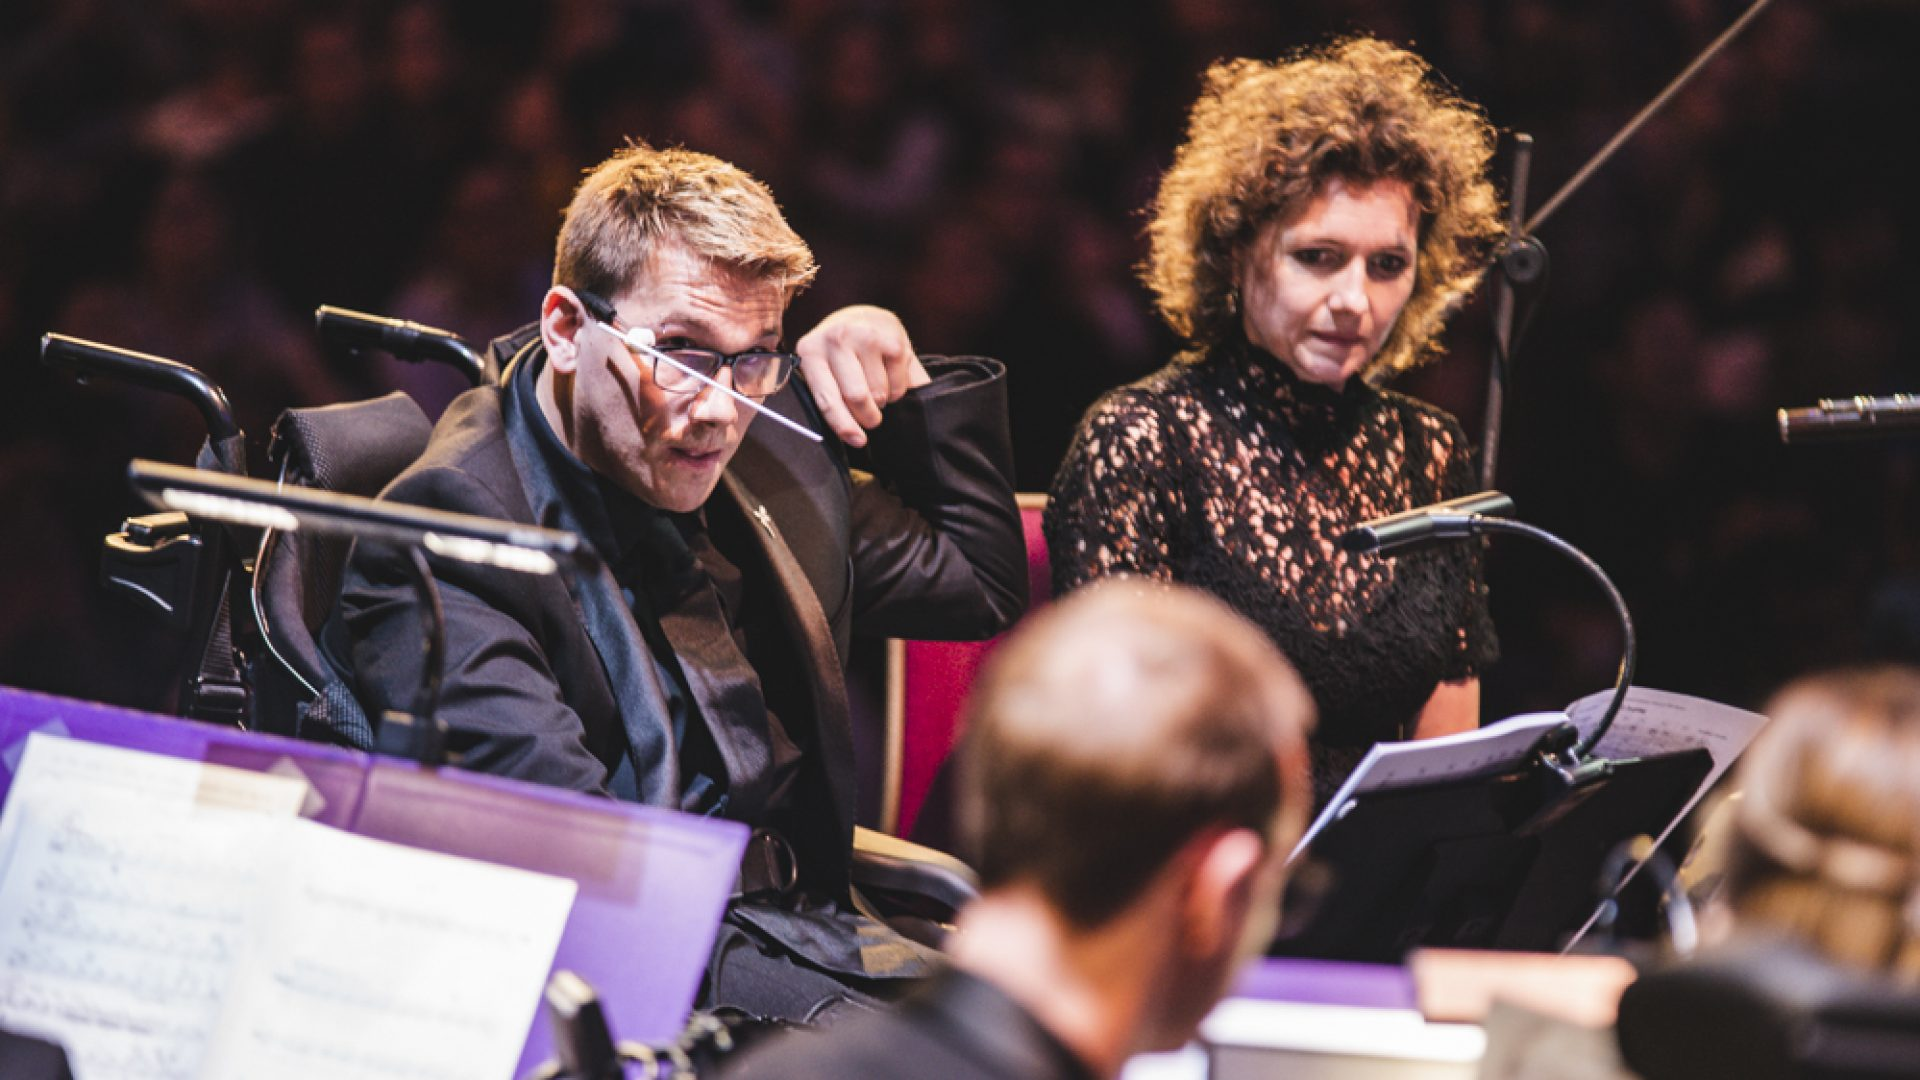 James Rose driving organisational change at the BBC Proms